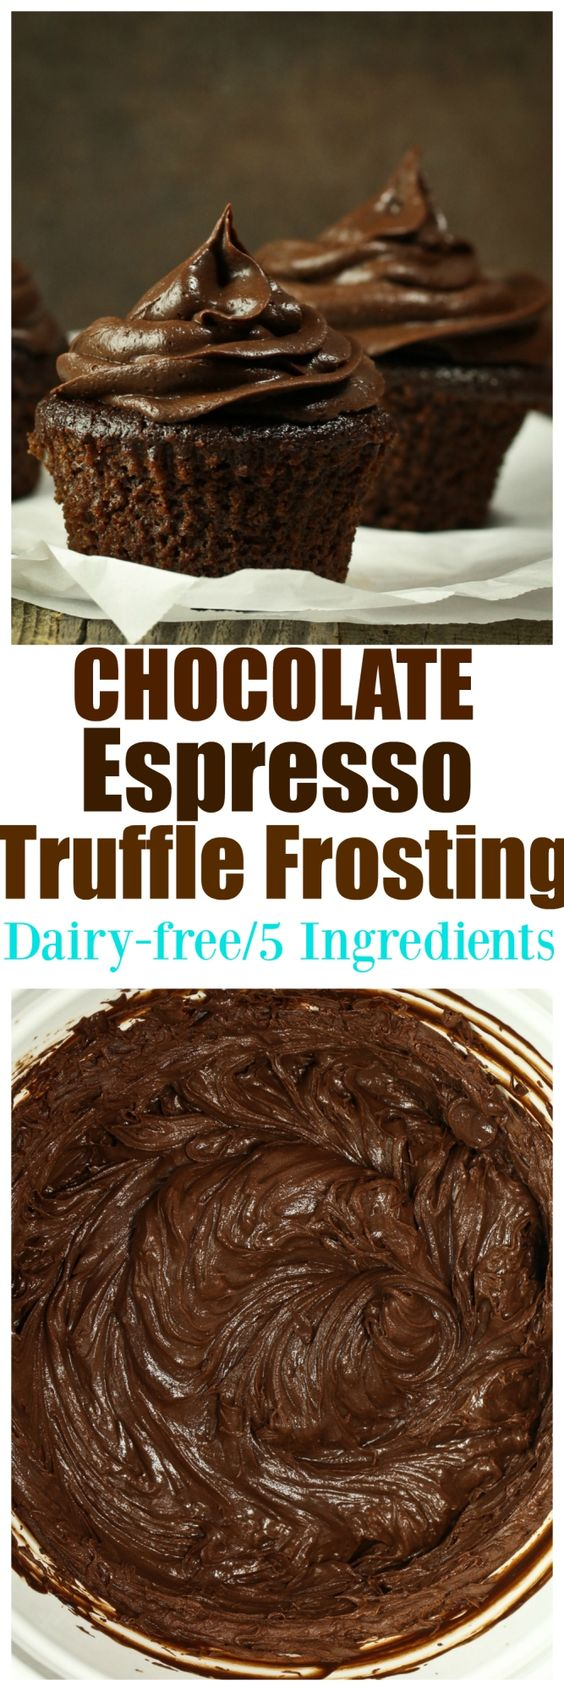 Vegan Chocolate Espresso Truffle Frosting | Recipe | Chocolate ...